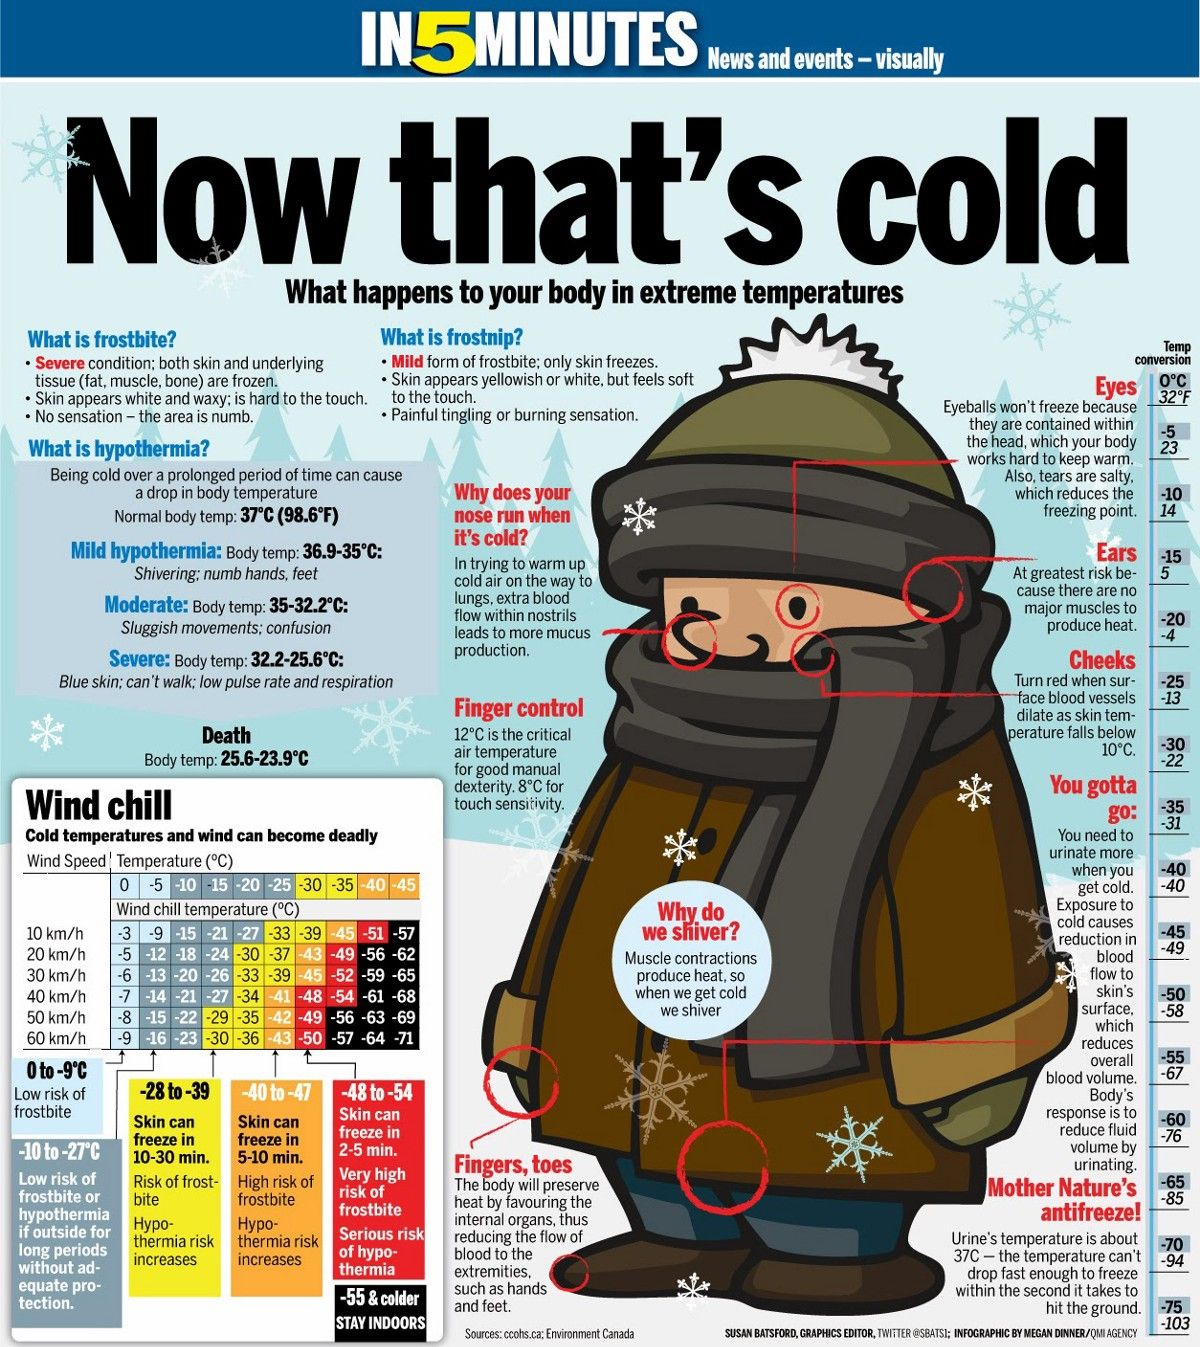 Handy Facts About Hypothermia Frostbite And Other Cold Injuries For Skiers And Boarders What Happened To You Winter Survival Frostbite